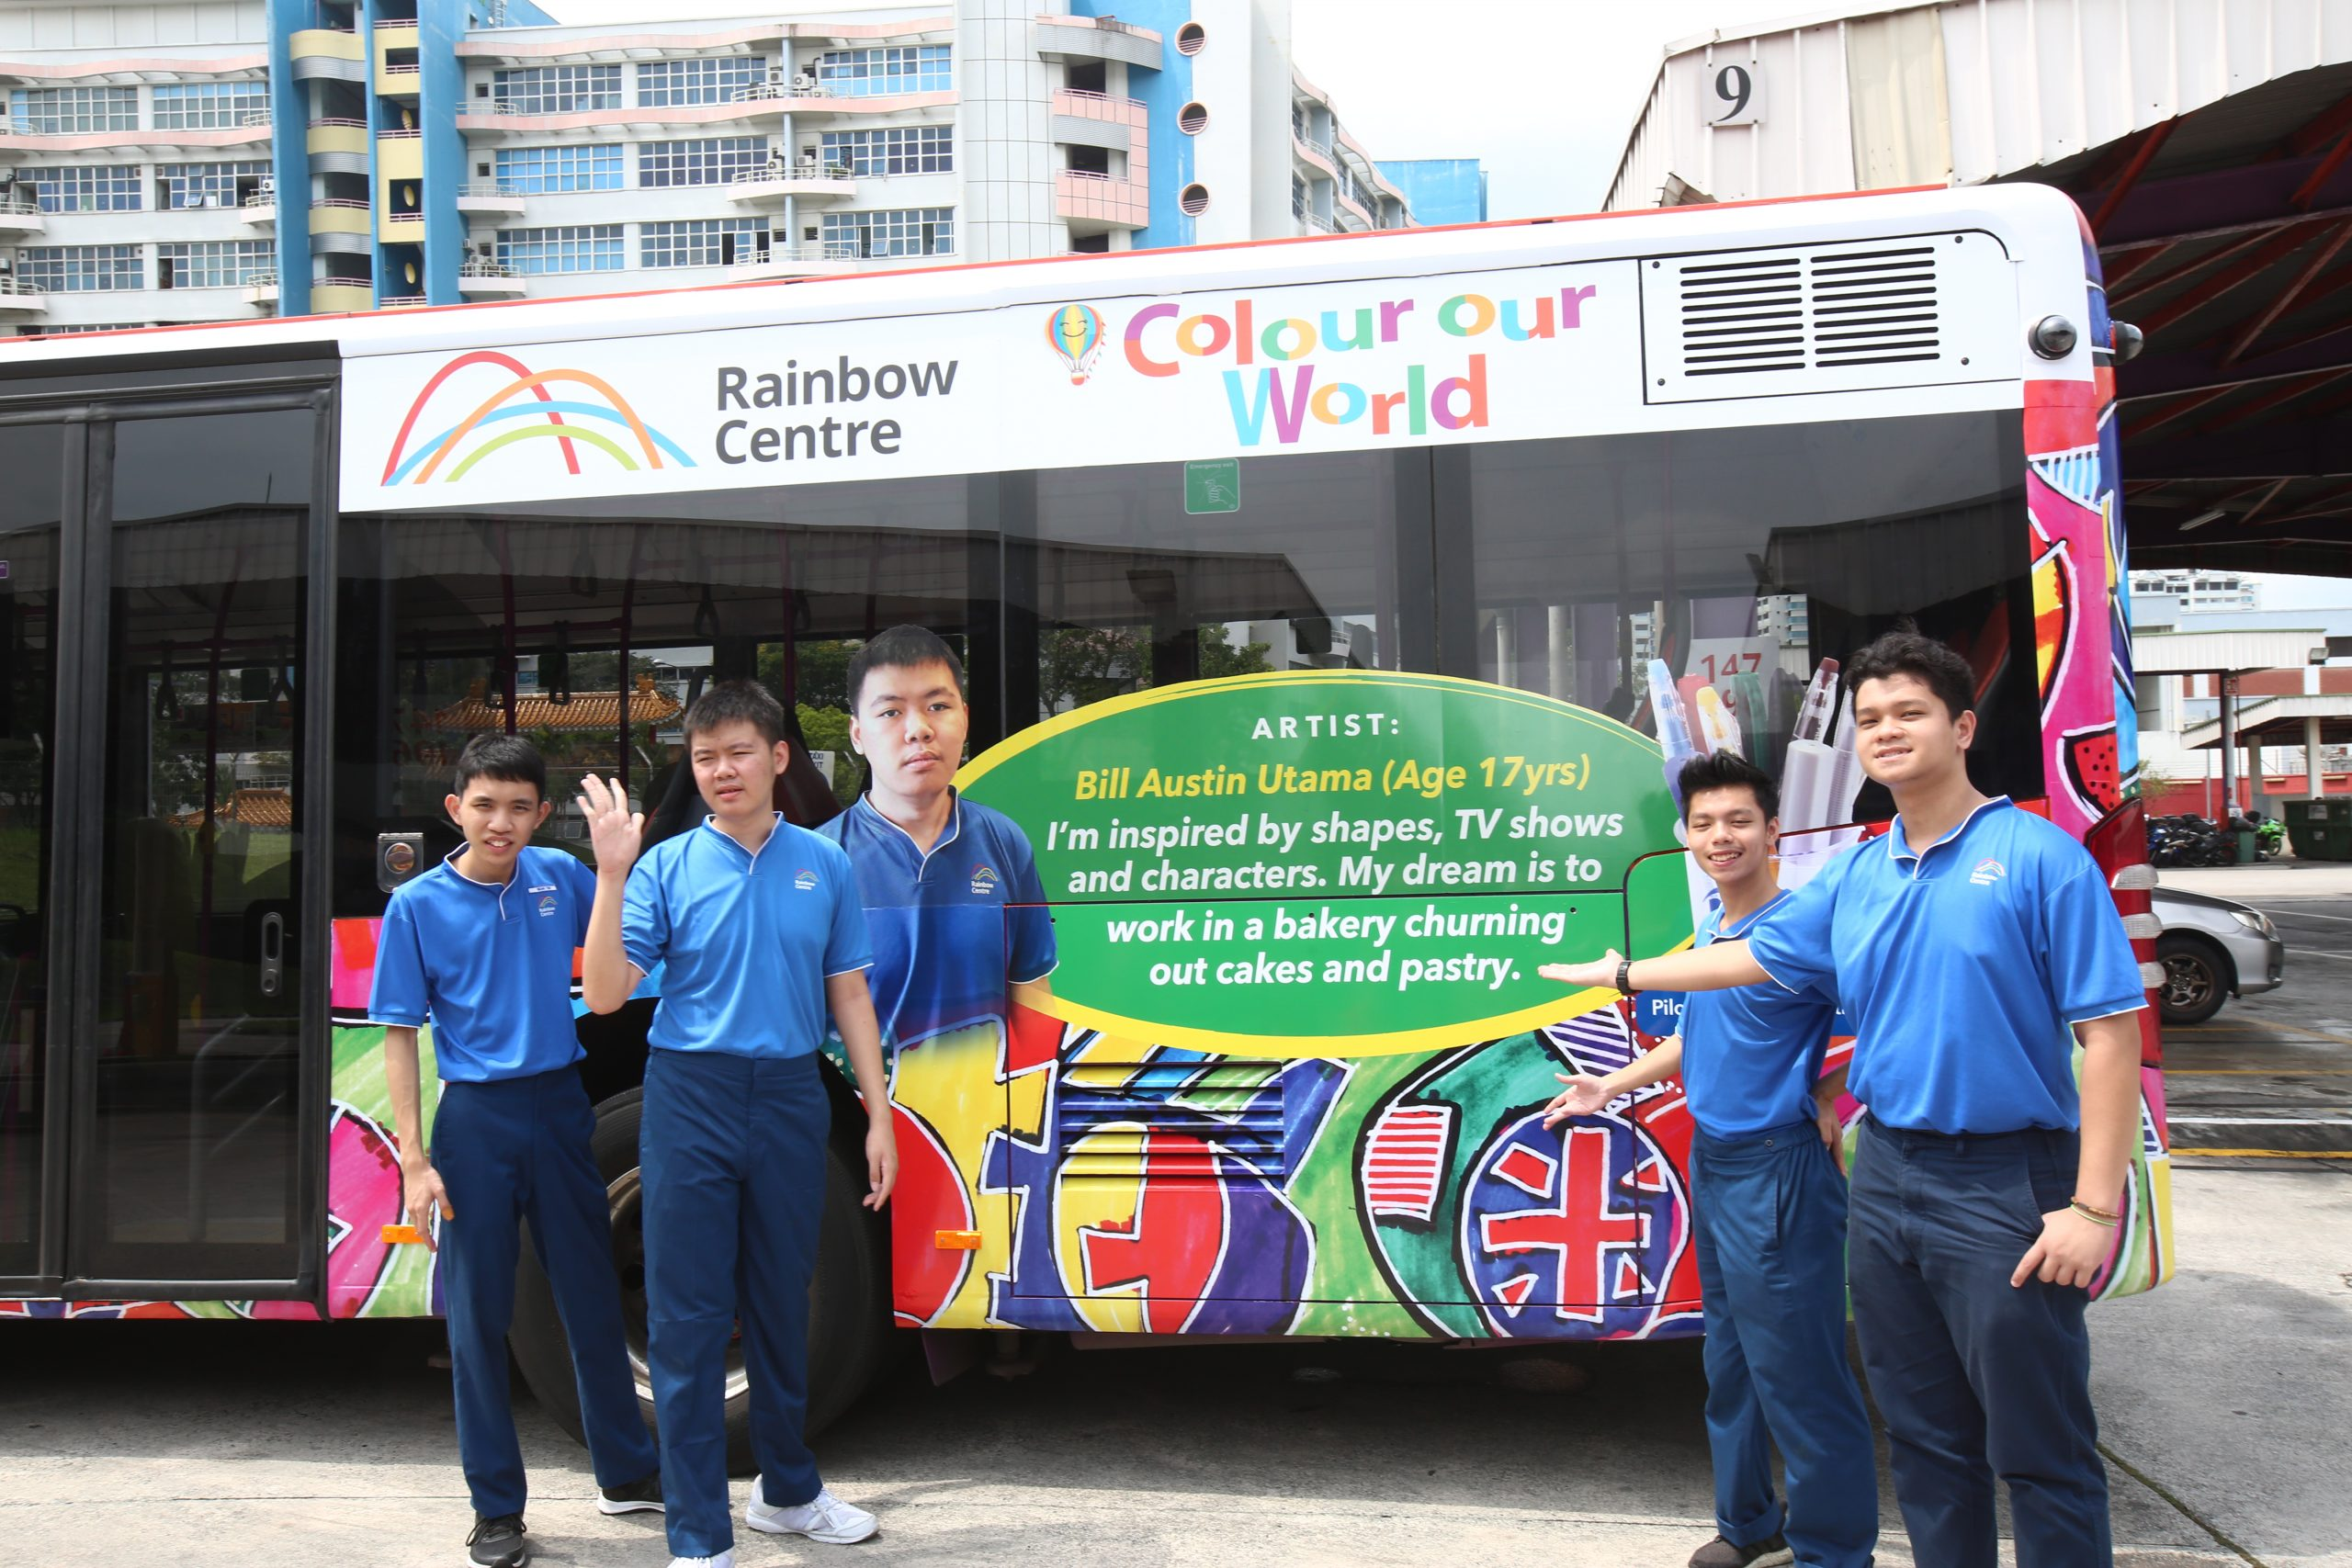 Artworks by Artability apprentices were featured on public buses as part of Rainbow Centre's collaboration with Pilot.